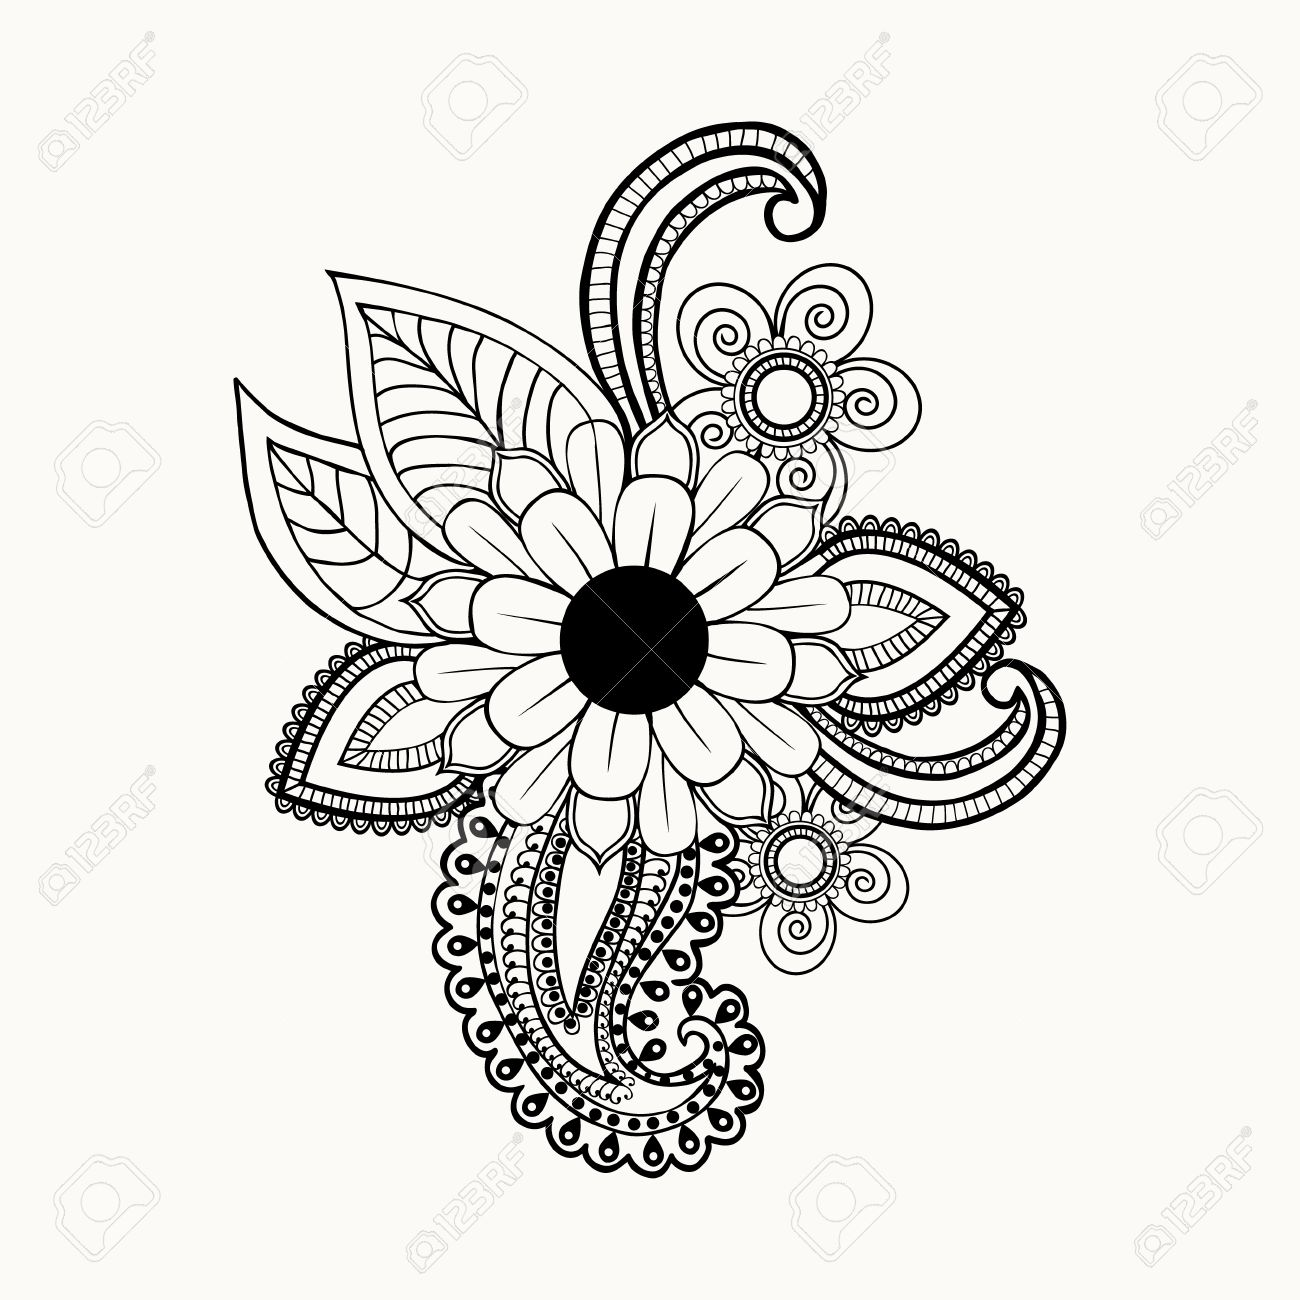 beautiful black and white flowers and leaves design element hand drawn abstract henna floral